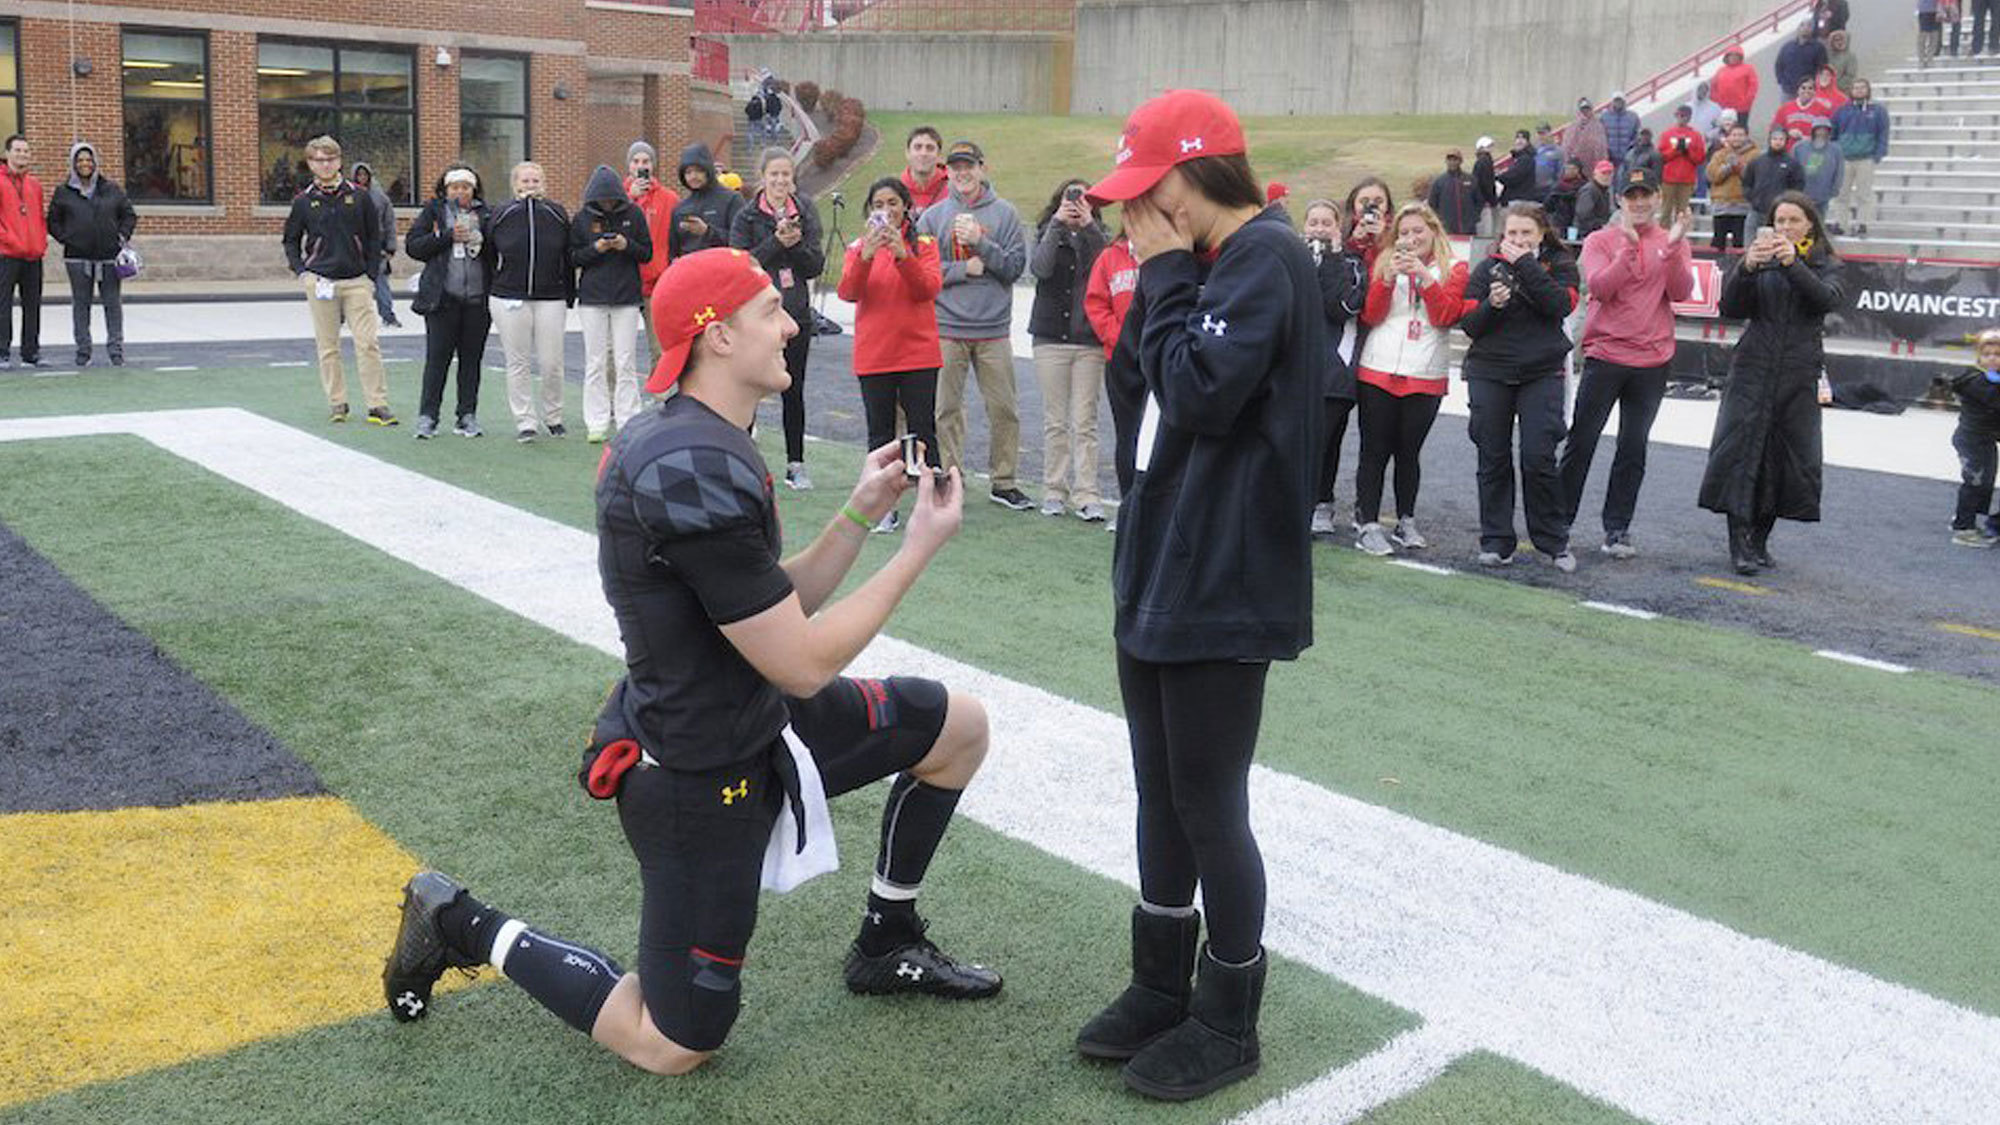 Bal-maryland-quarterback-caleb-rowe-proposes-to-longtime-girlfriend-on-field-after-win-20161126